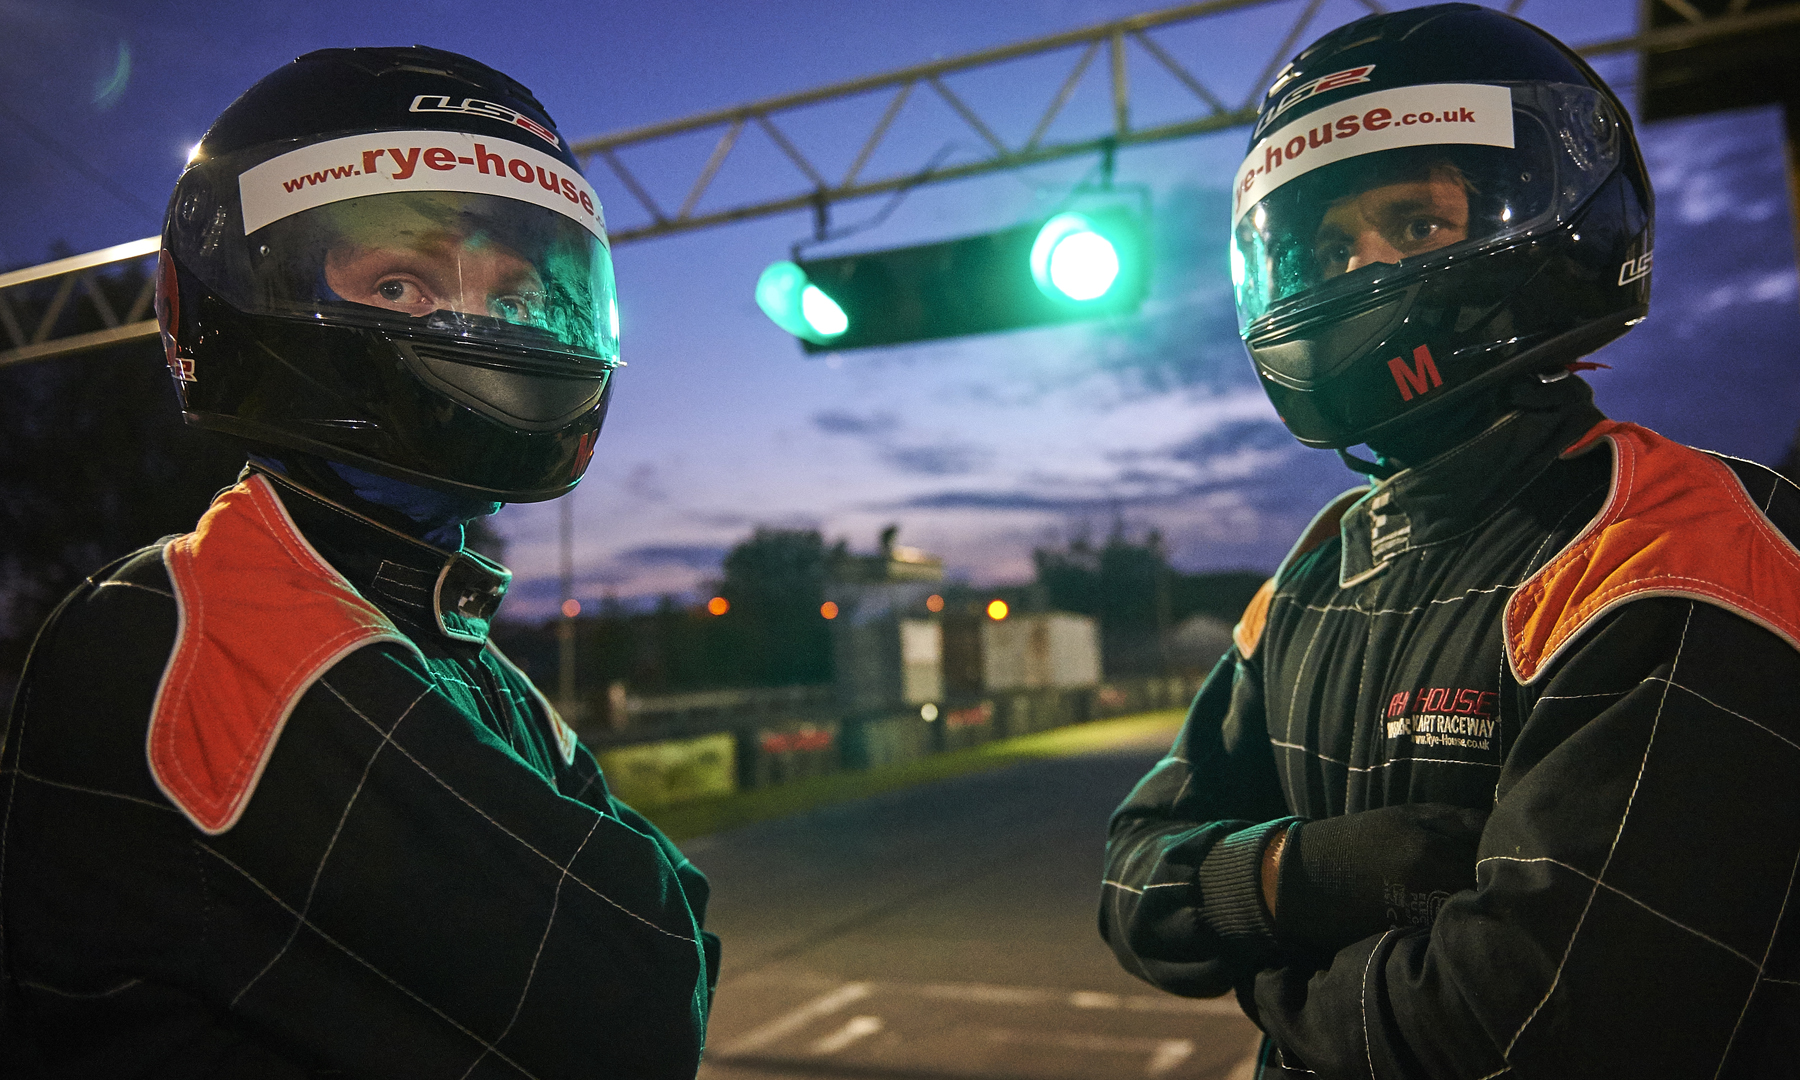 the drivers